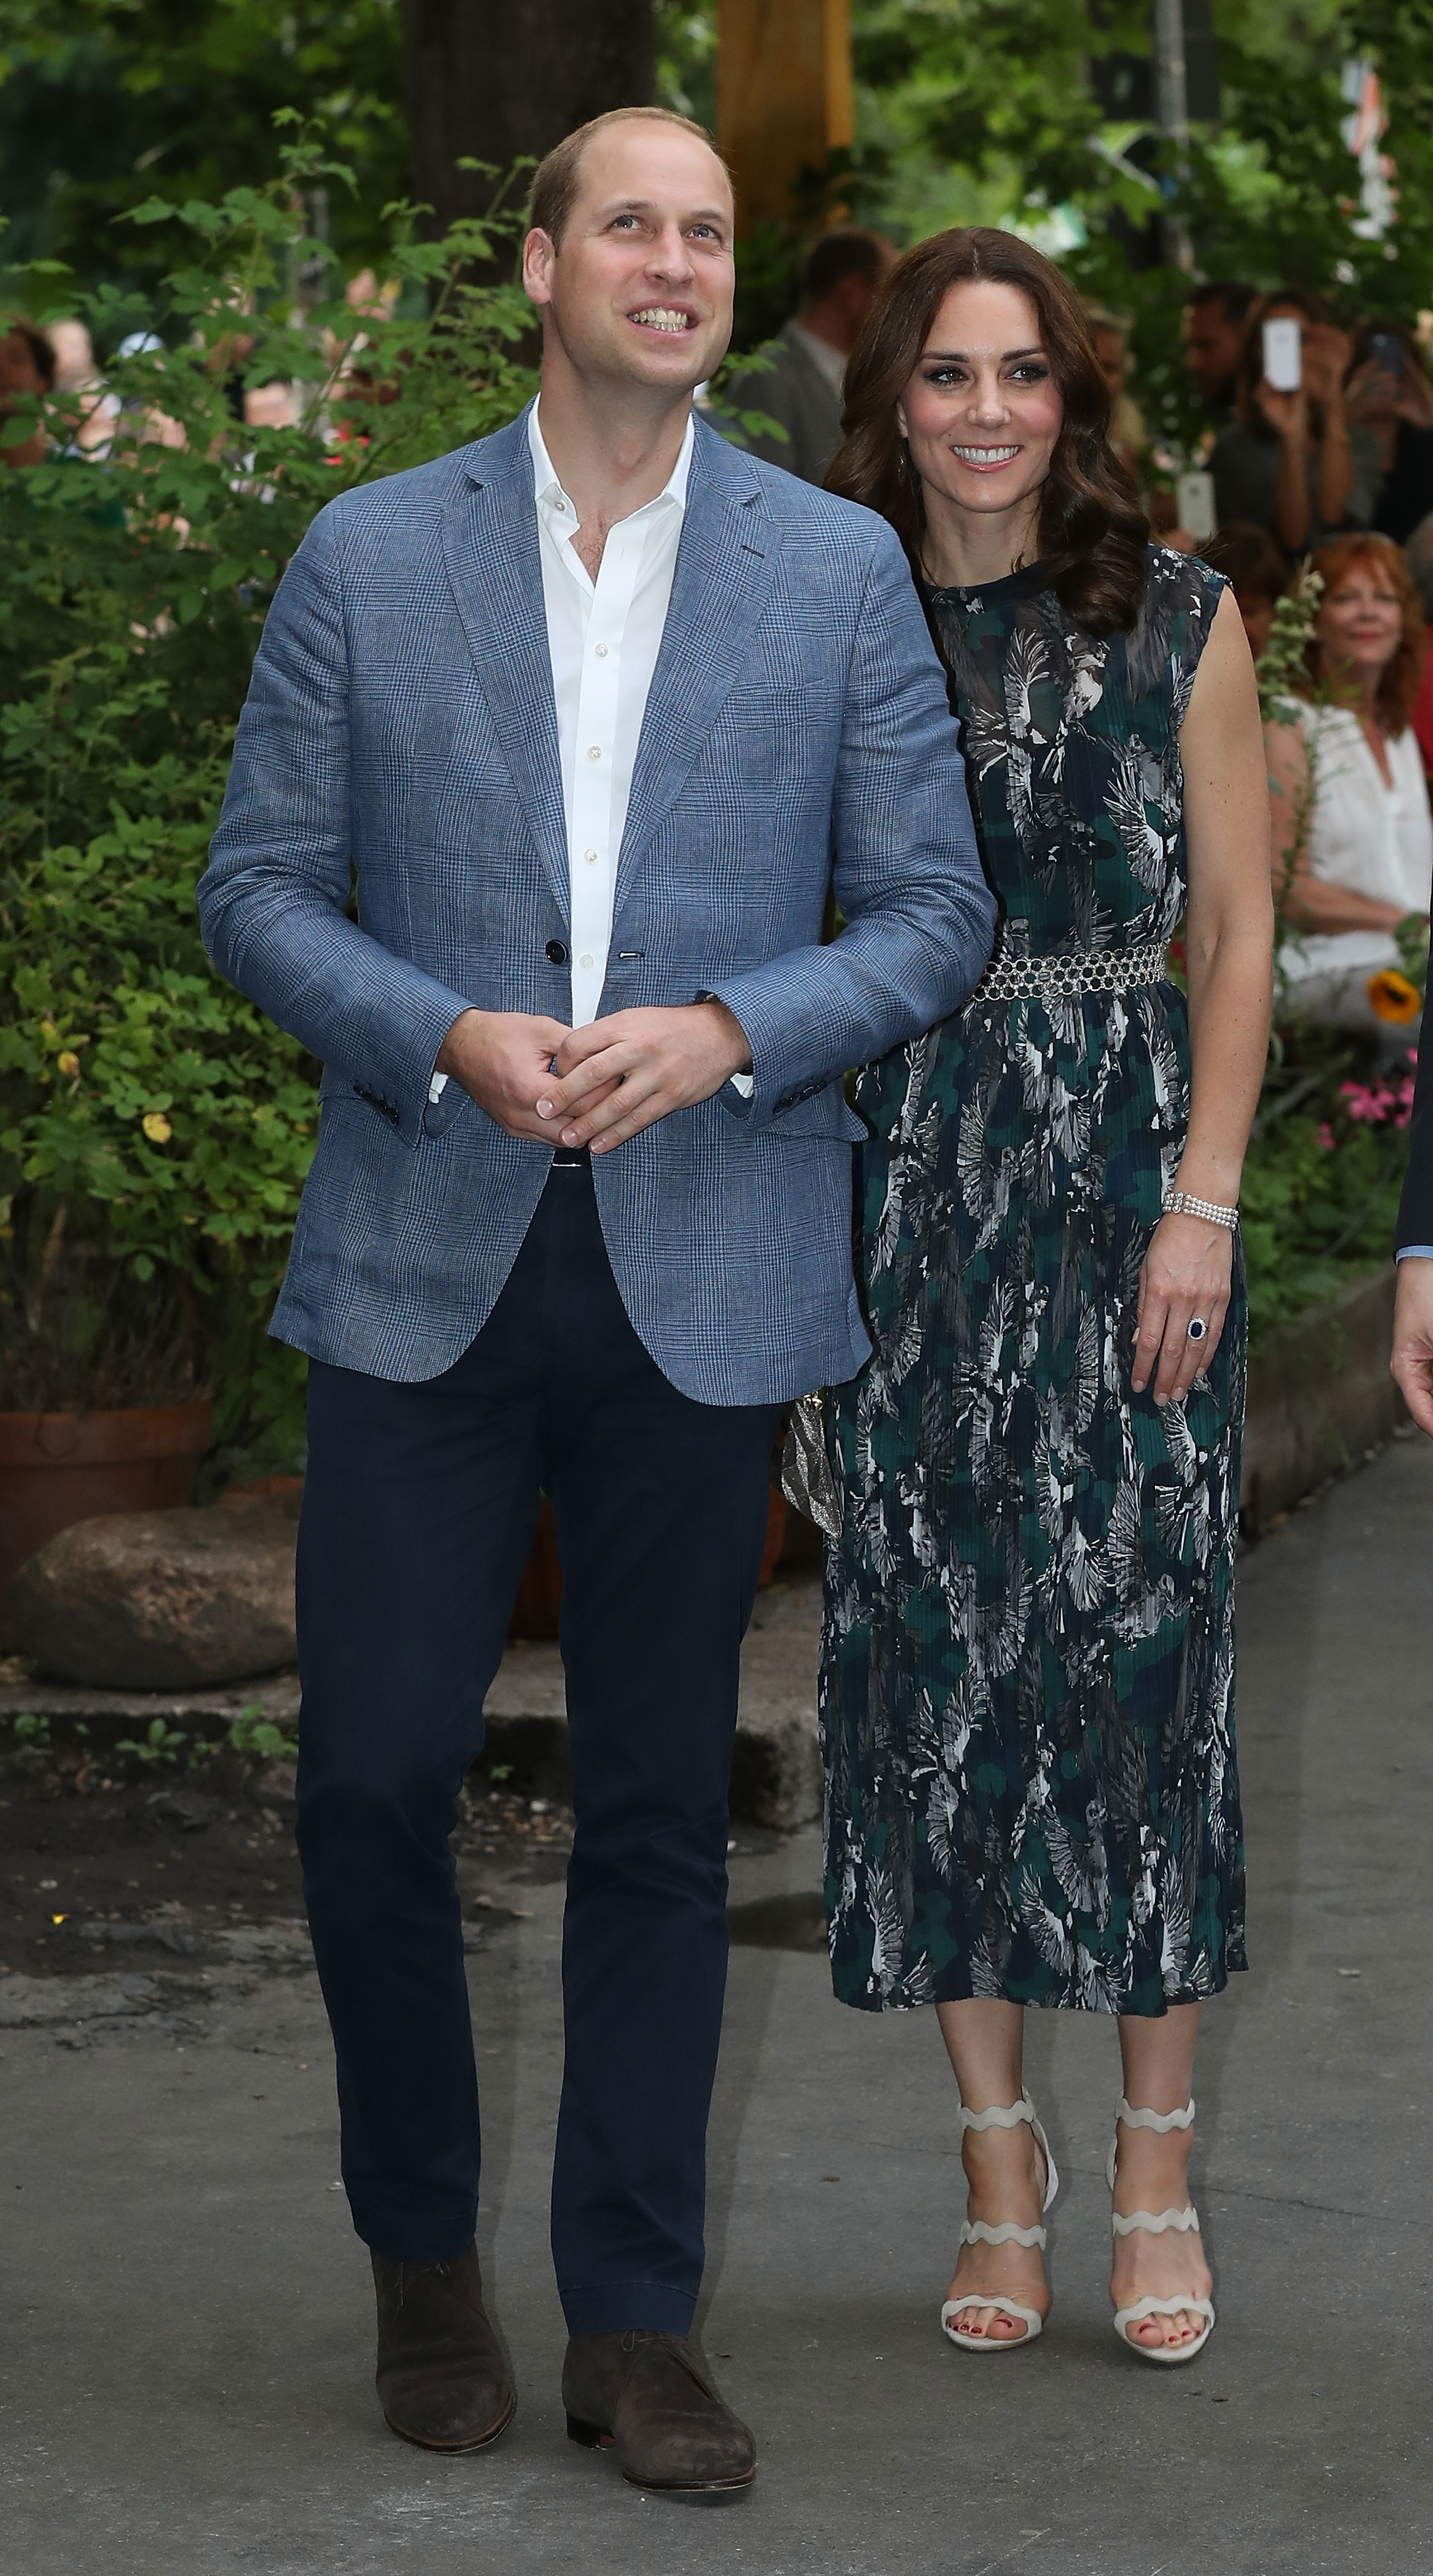 BERLIN, GERMANY - JULY 20: Prince William, Duke of Cambridge, and Catherine, Duchess of Cambridge, arrive at a reception at Claerchen's Ballhaus dance hall following a day in Heidelberg on the second day of the royal visit to Germany on July 20, 2017 in Berlin, Germany. The royal couple are on a three-day trip to Germany that includes visits to Berlin, Hamburg and Heidelberg. (Pool Photo by Sean Gallup/Getty Images)